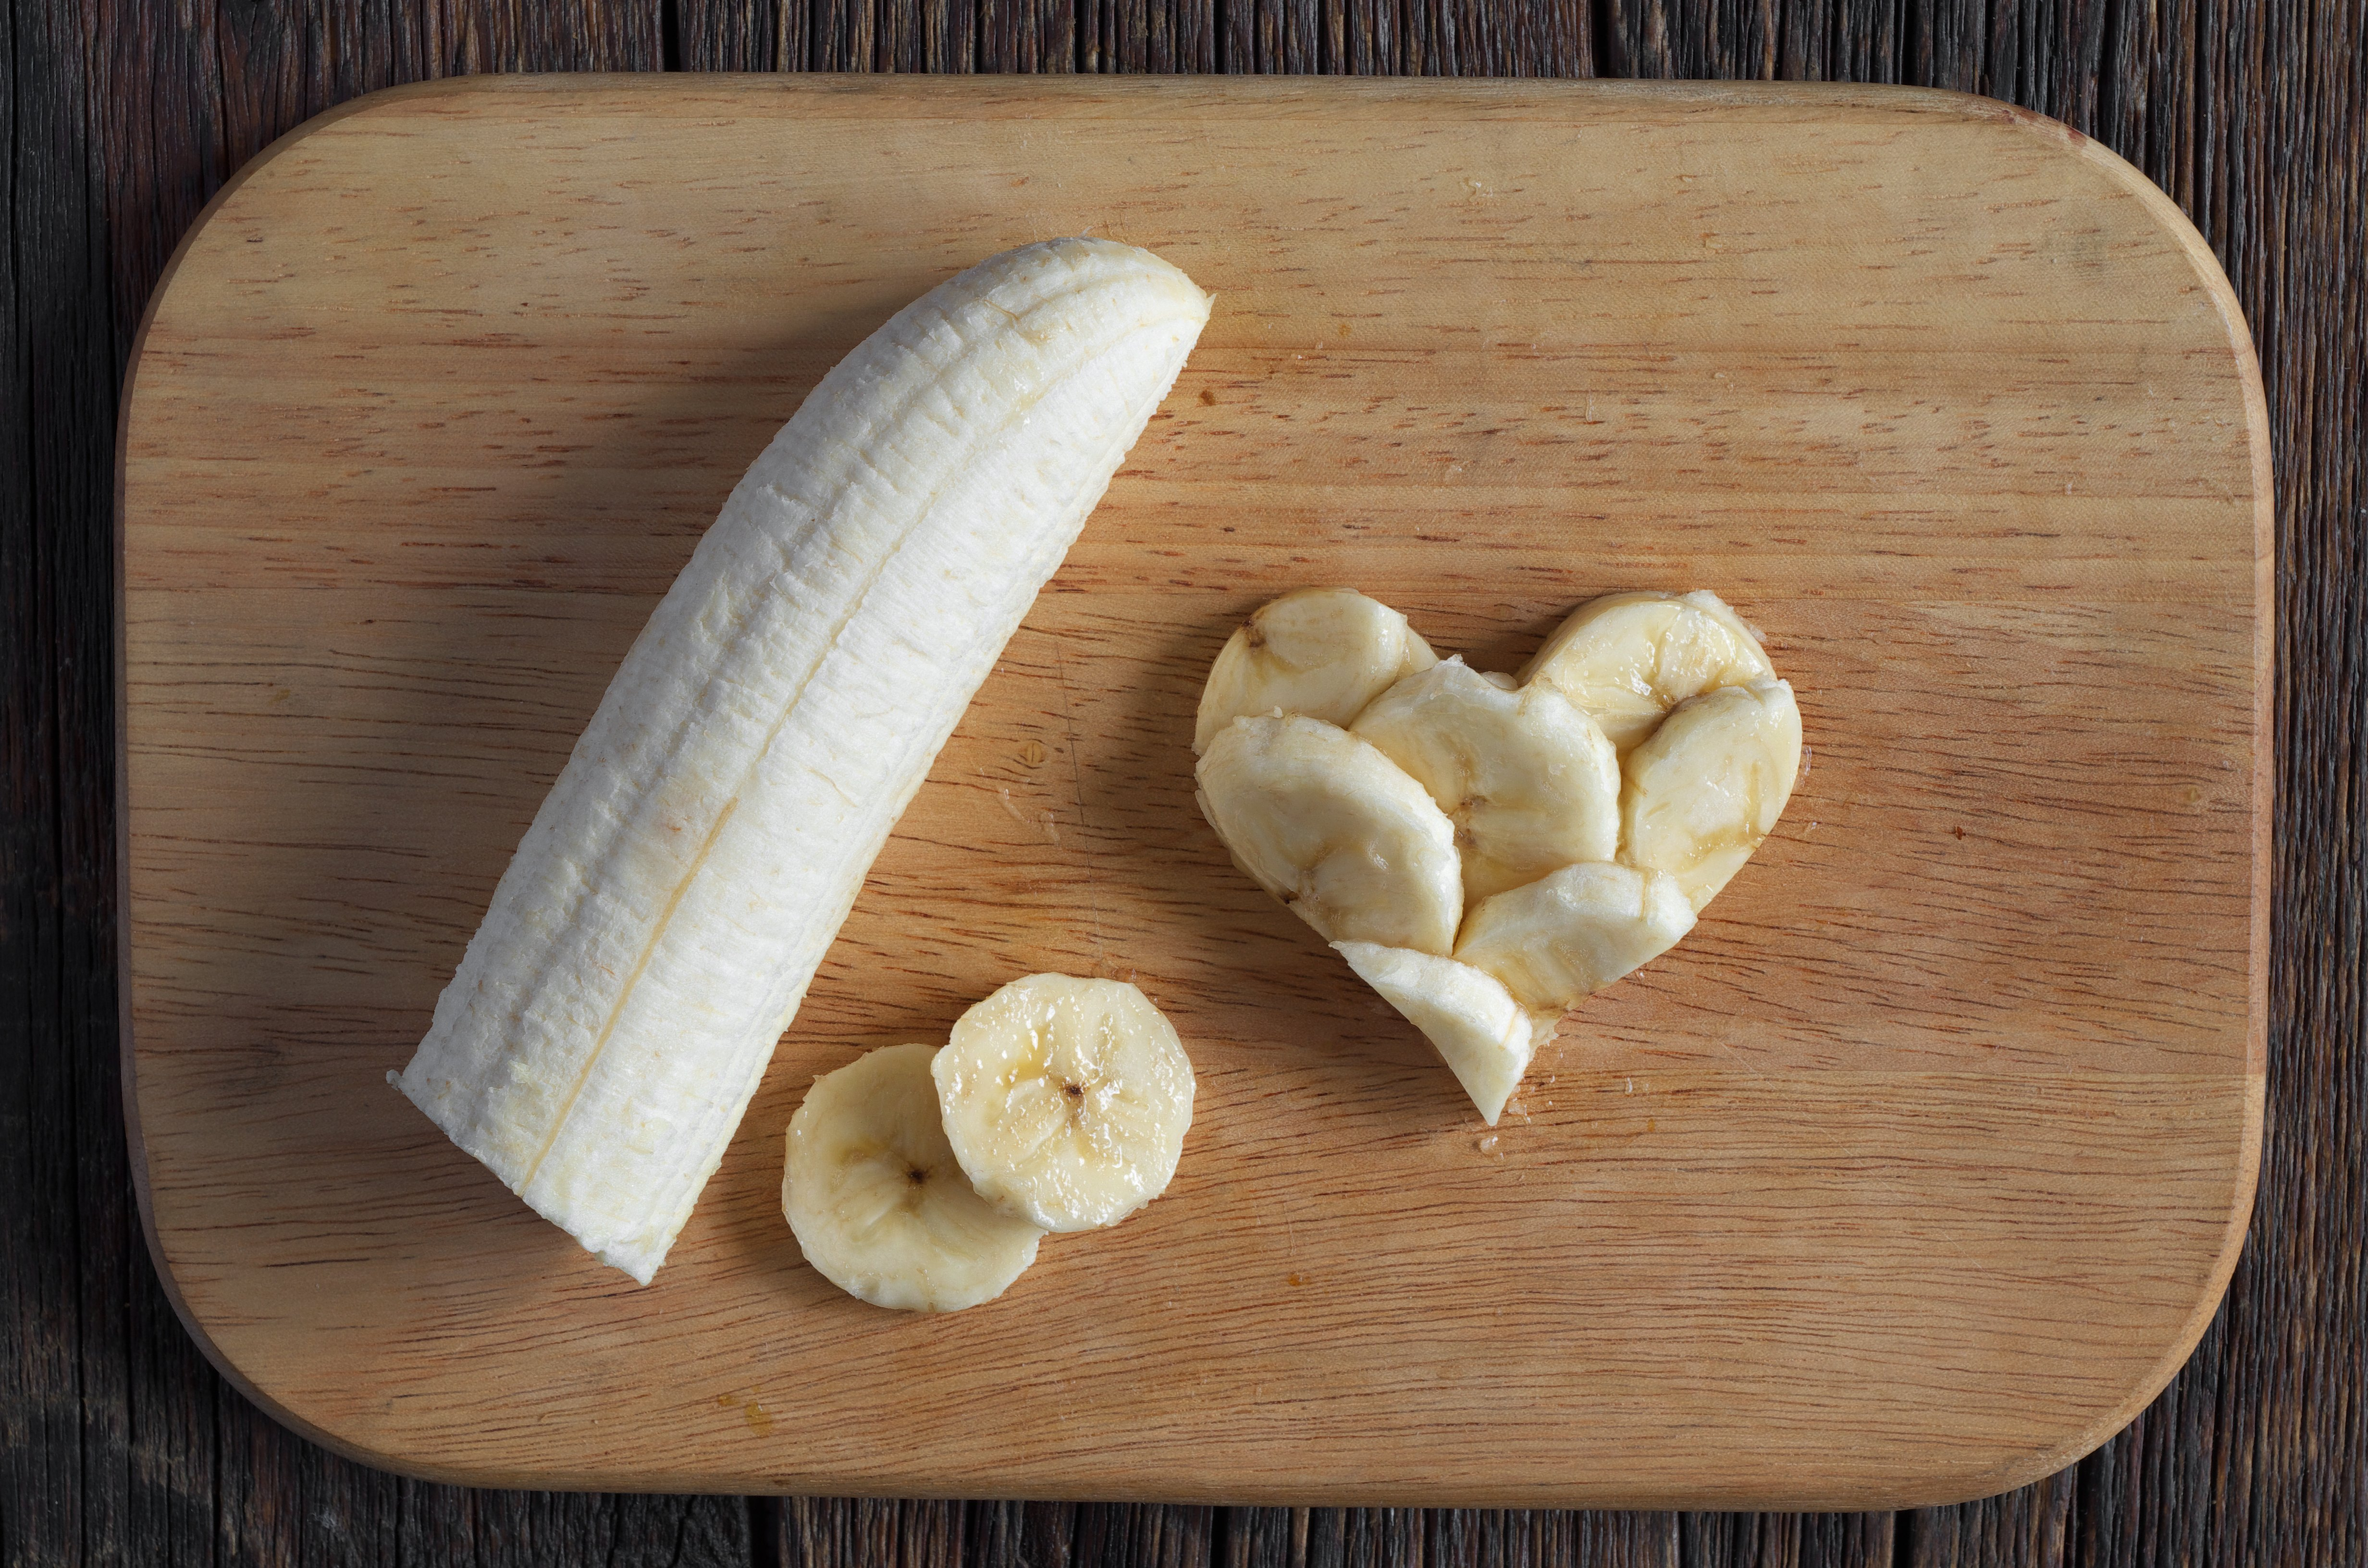 Bananas Are Healthy, but You Shouldn't Eat Too Many